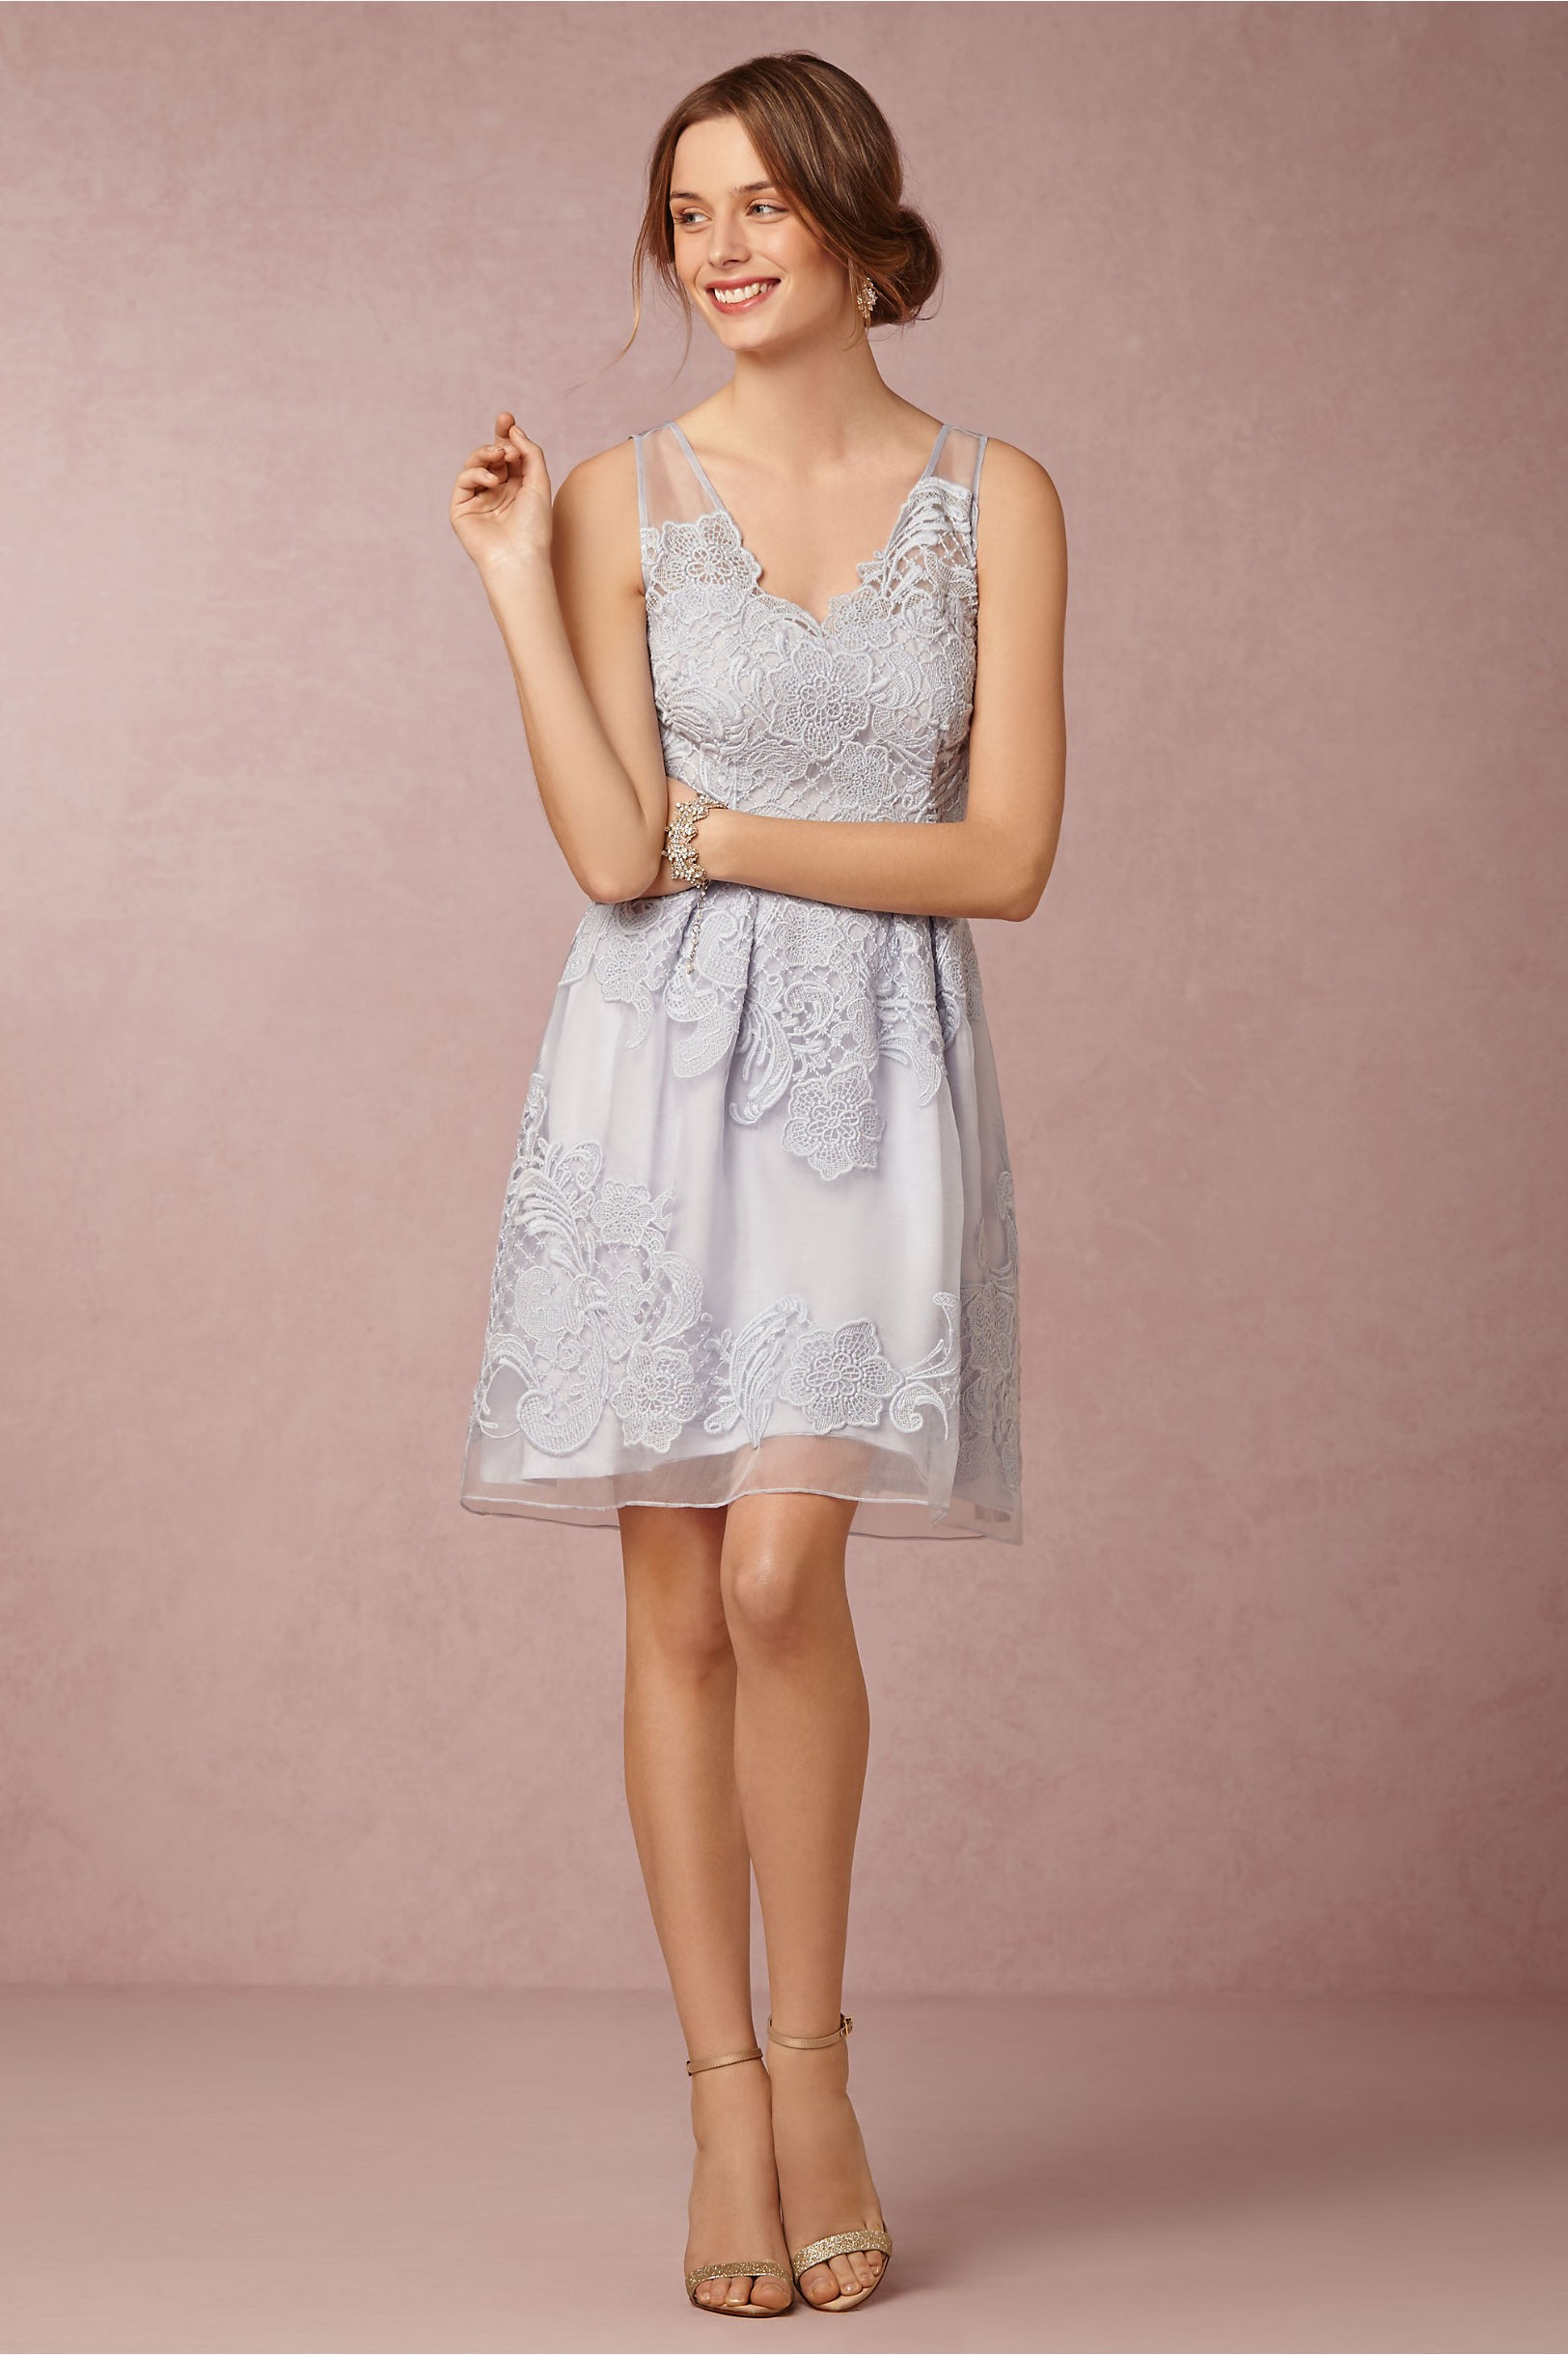 The 11 Best Dresses to Wear to a Summer Wedding | The Eleven Best